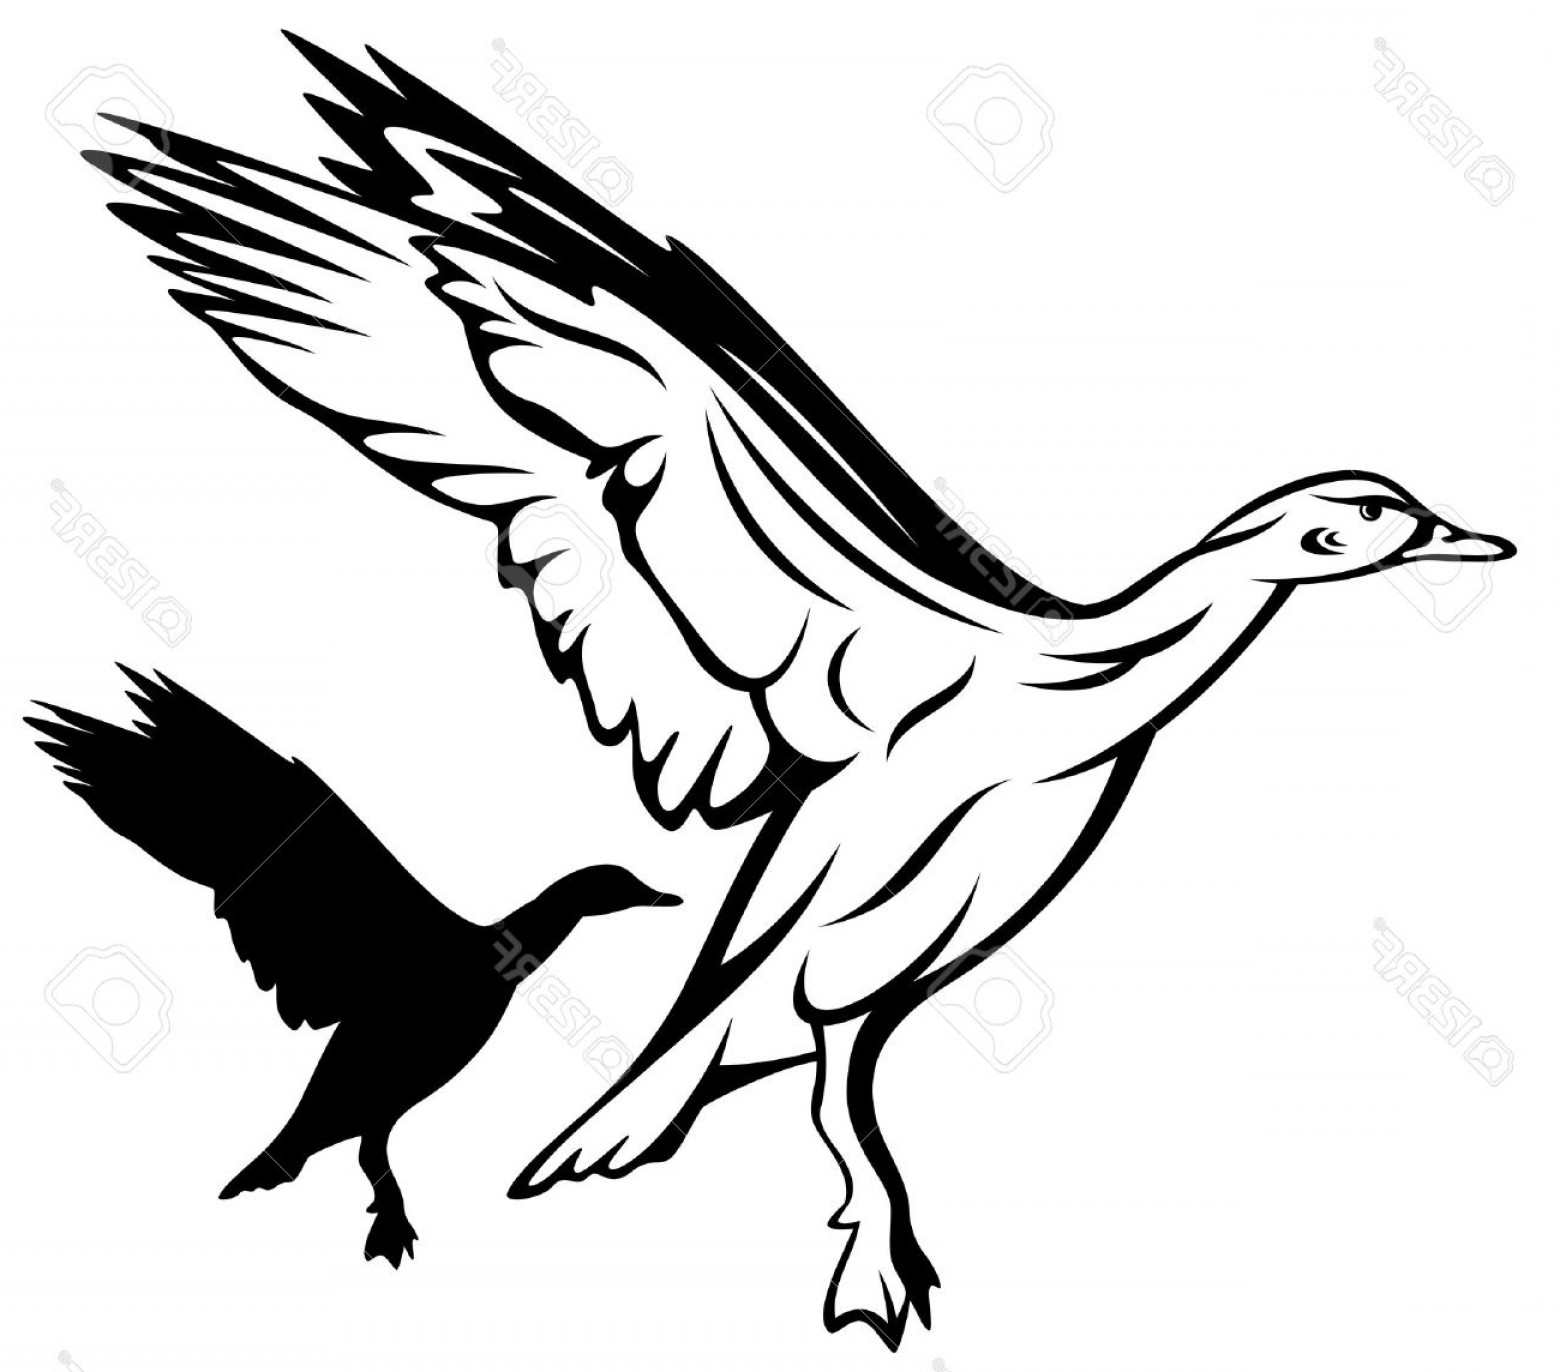 Flying Duck Outline Vector: Photoflying Duck Vector Illustration Black And White Outline